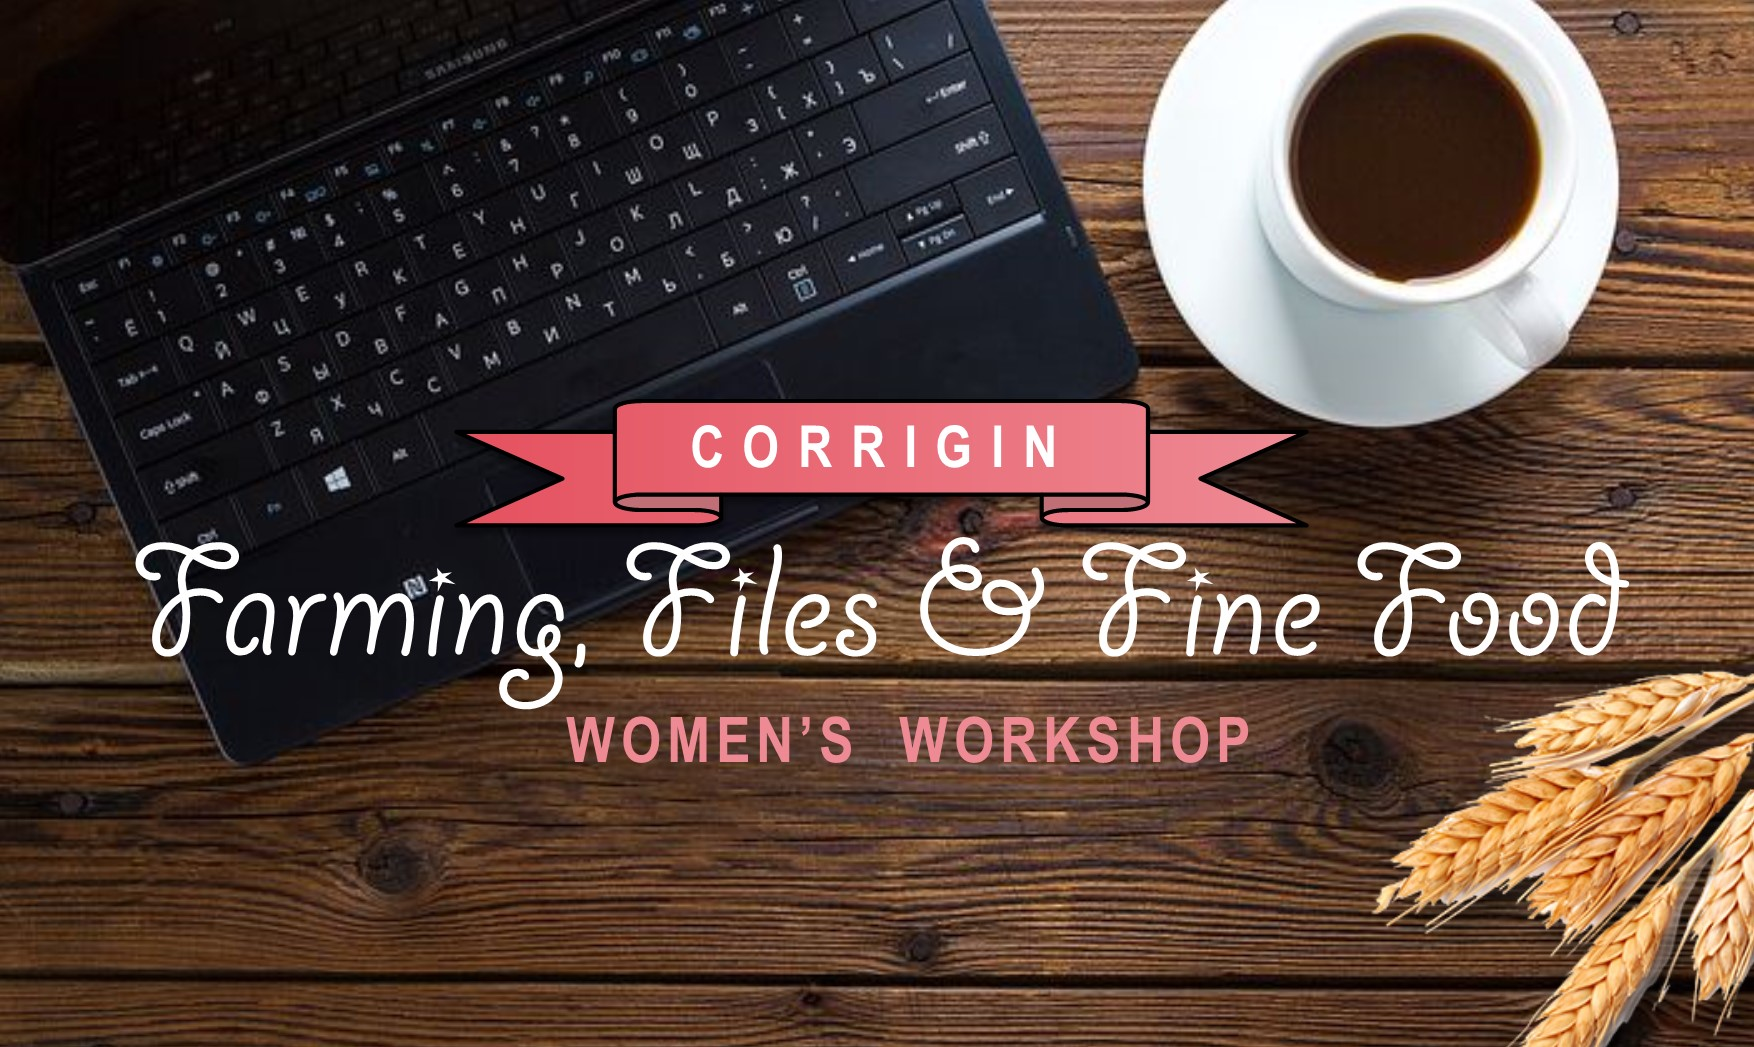 Image: Farming, Files & Fine Food WOMEN'S WORKSHOP